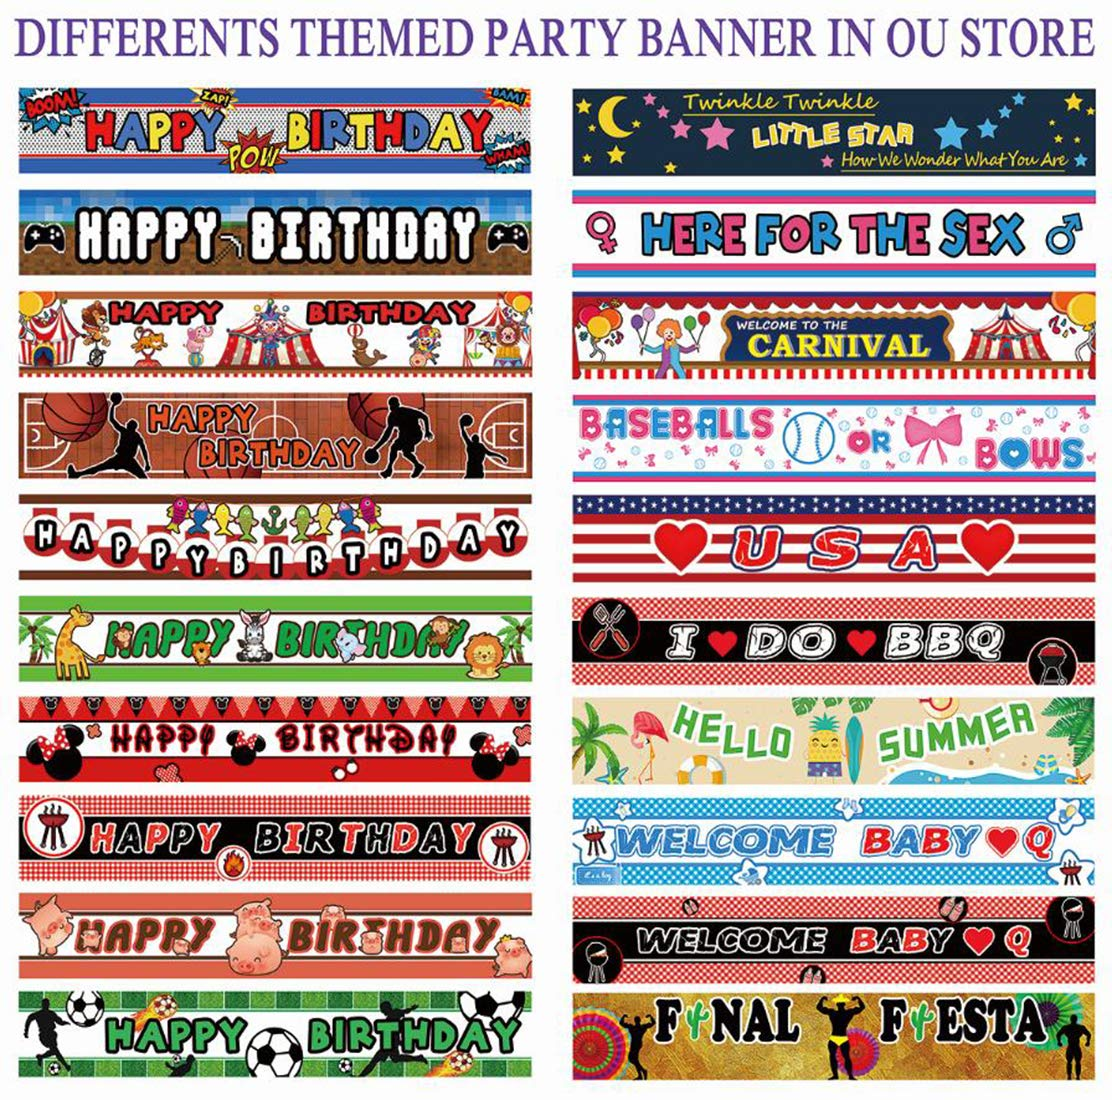 40th Birthday Sign Large 40th Birthday Banner Never Looked So Good 40th Birthday Party Supplies Decorations 9.8 x 1.5 feet